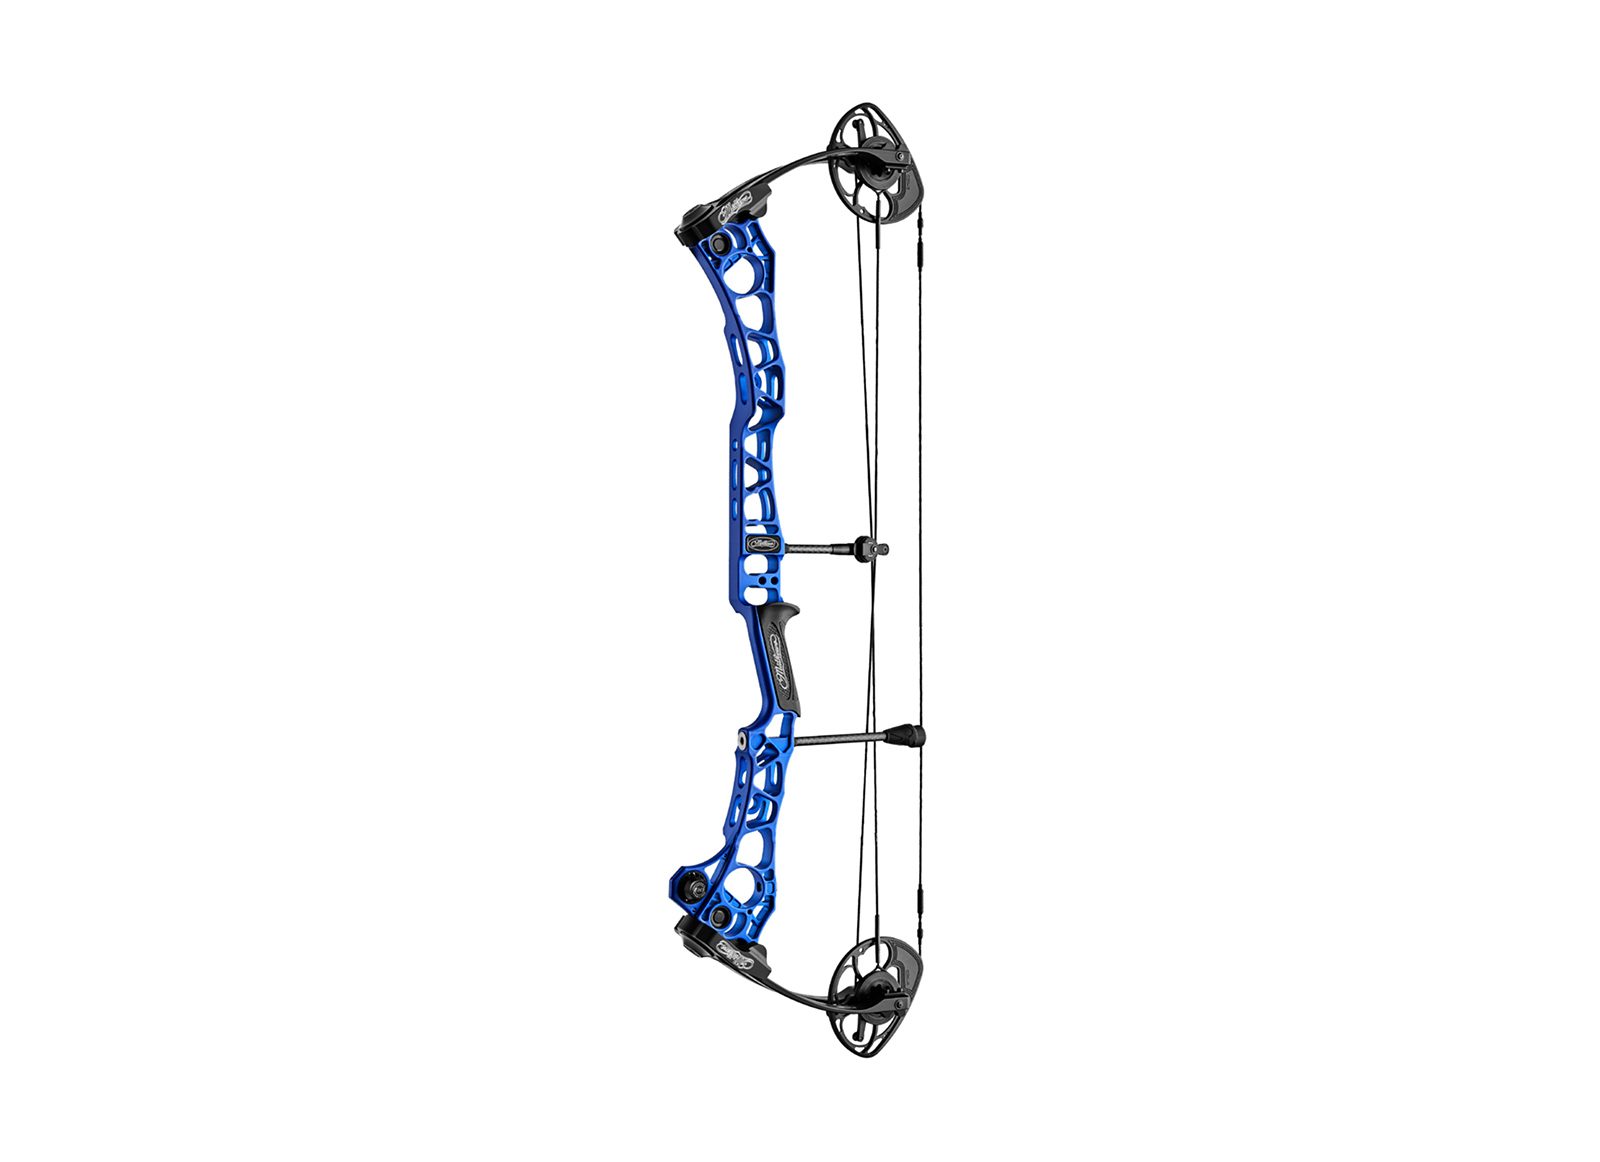 MATHEWS COMPOUND TRX 34 2021